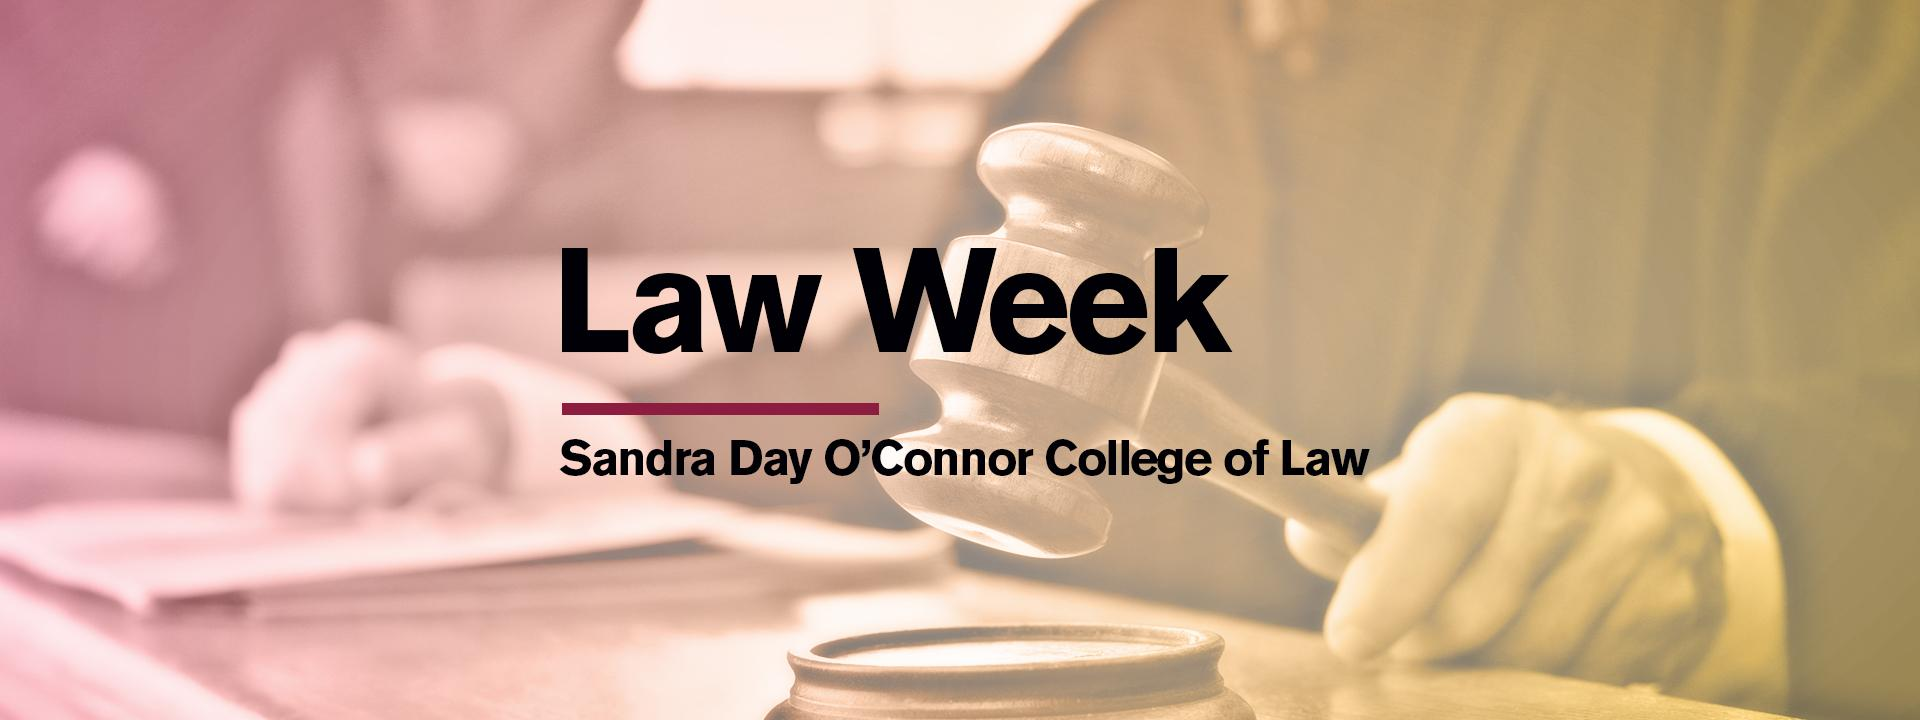 Law Week graphic